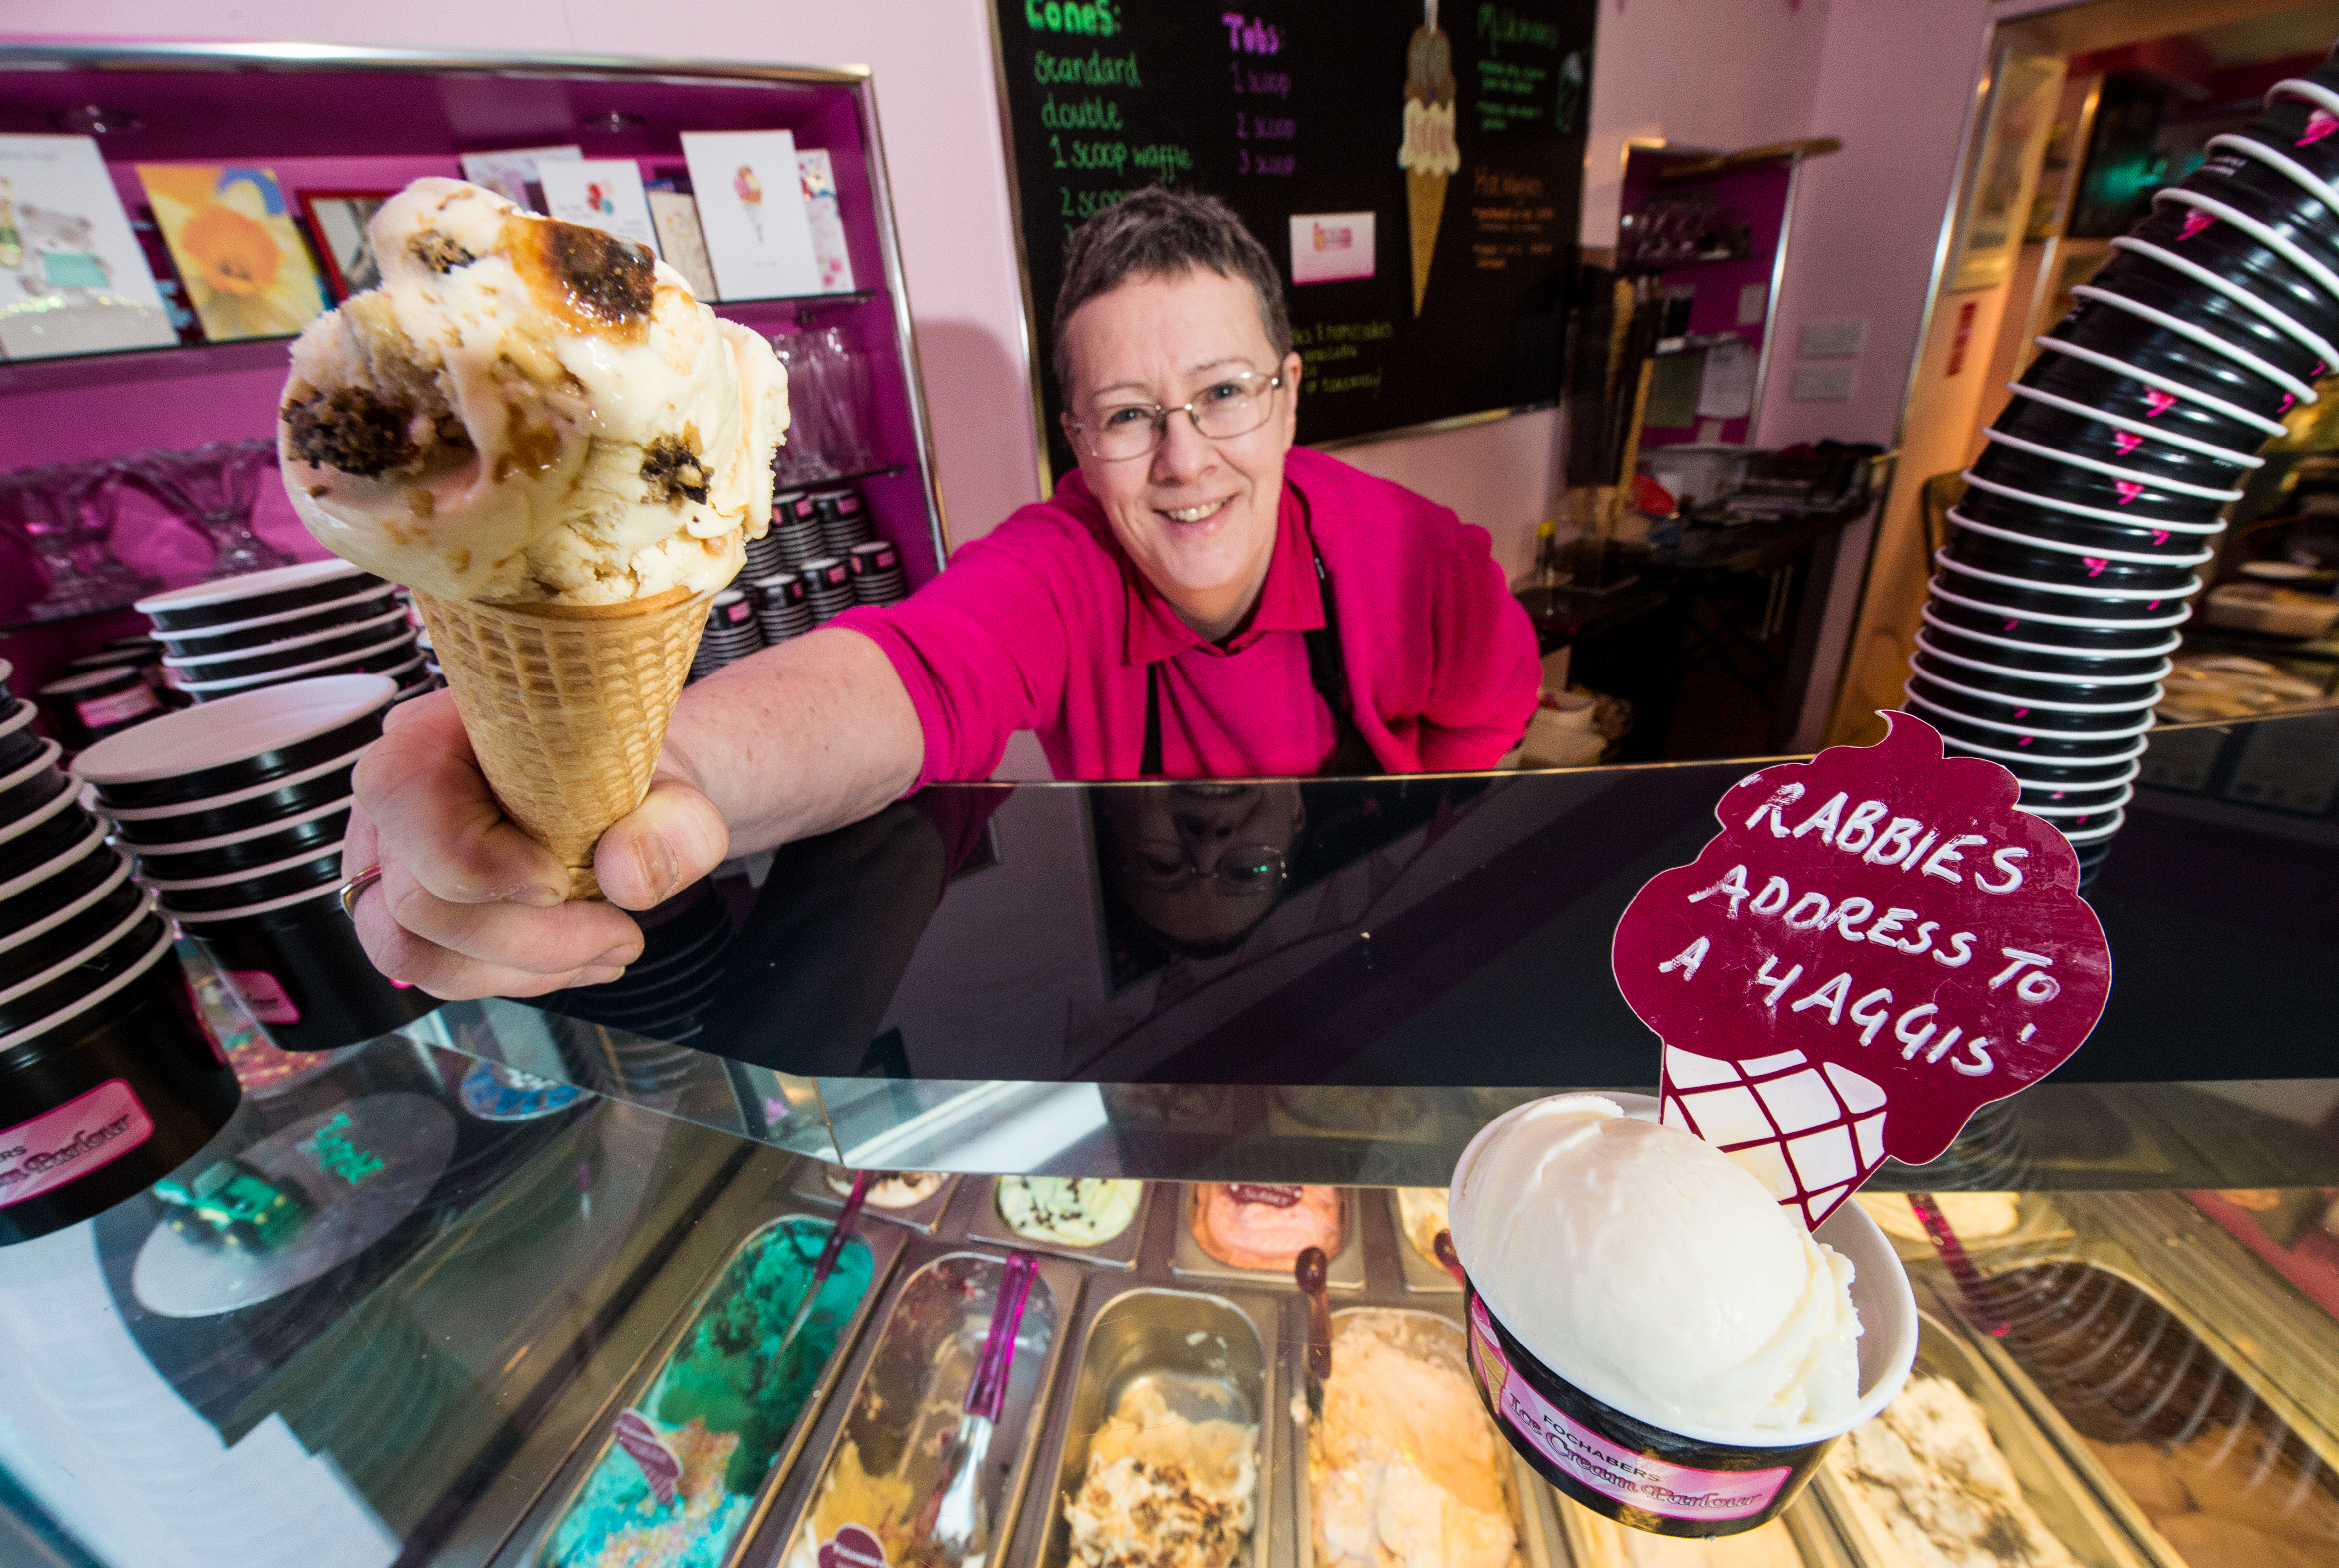 Sheila Gray, owner of the Fochabers Ice Cream Parlour, serves up her new haggis potato scone ice cream.